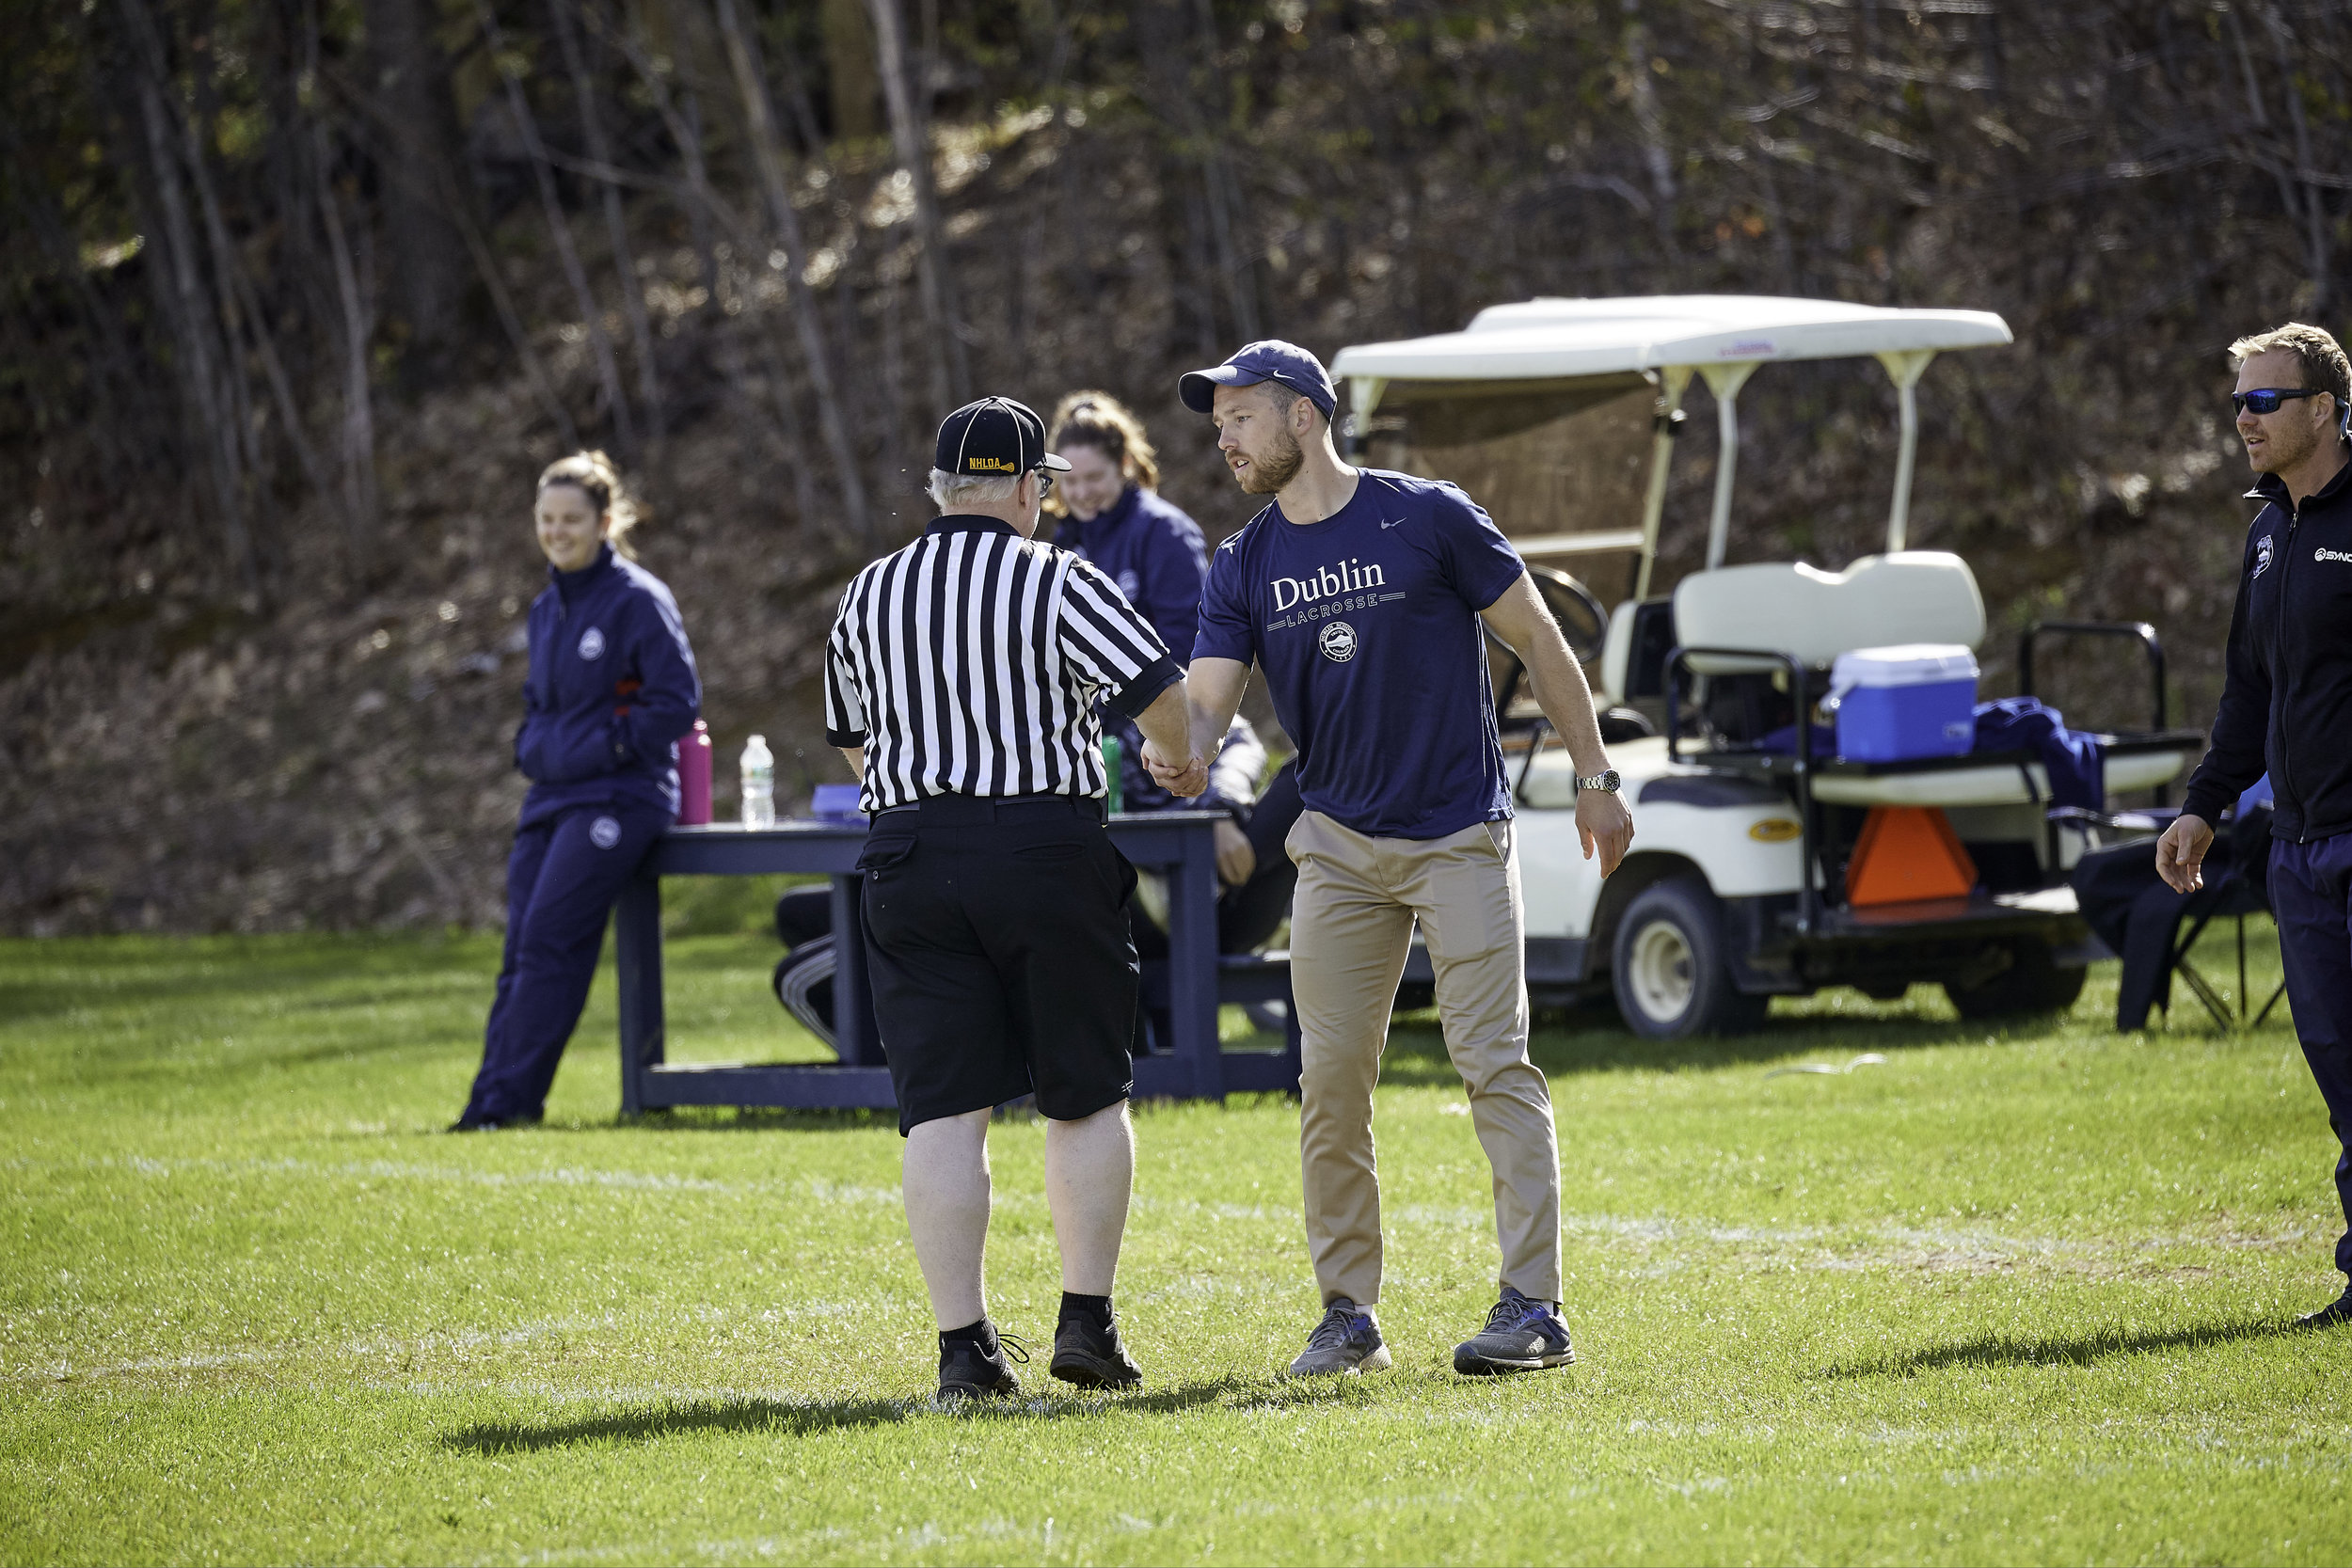 Boys Lax vs Northfield Mount Hermon JV - May 15 2019 - 0071.jpg